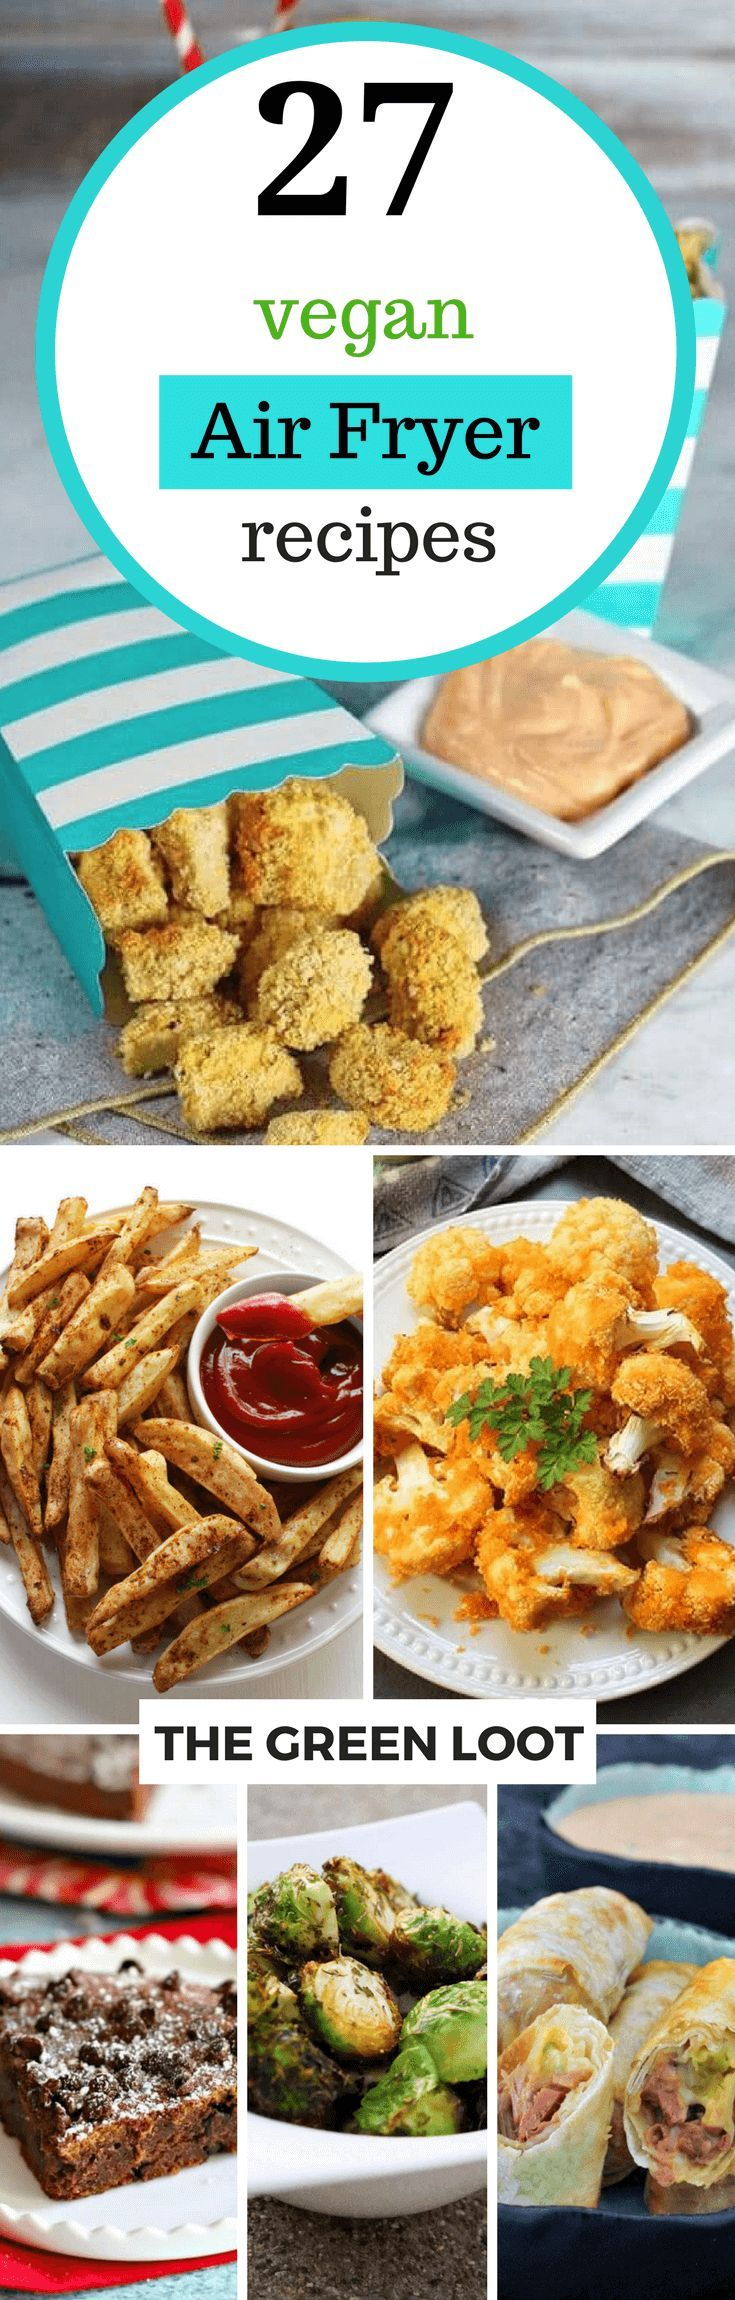 27 Tasty Vegan Air Fryer Recipes With Little To No Oil Air Fryer Recipes Recipes Air Fryer Recipes Healthy